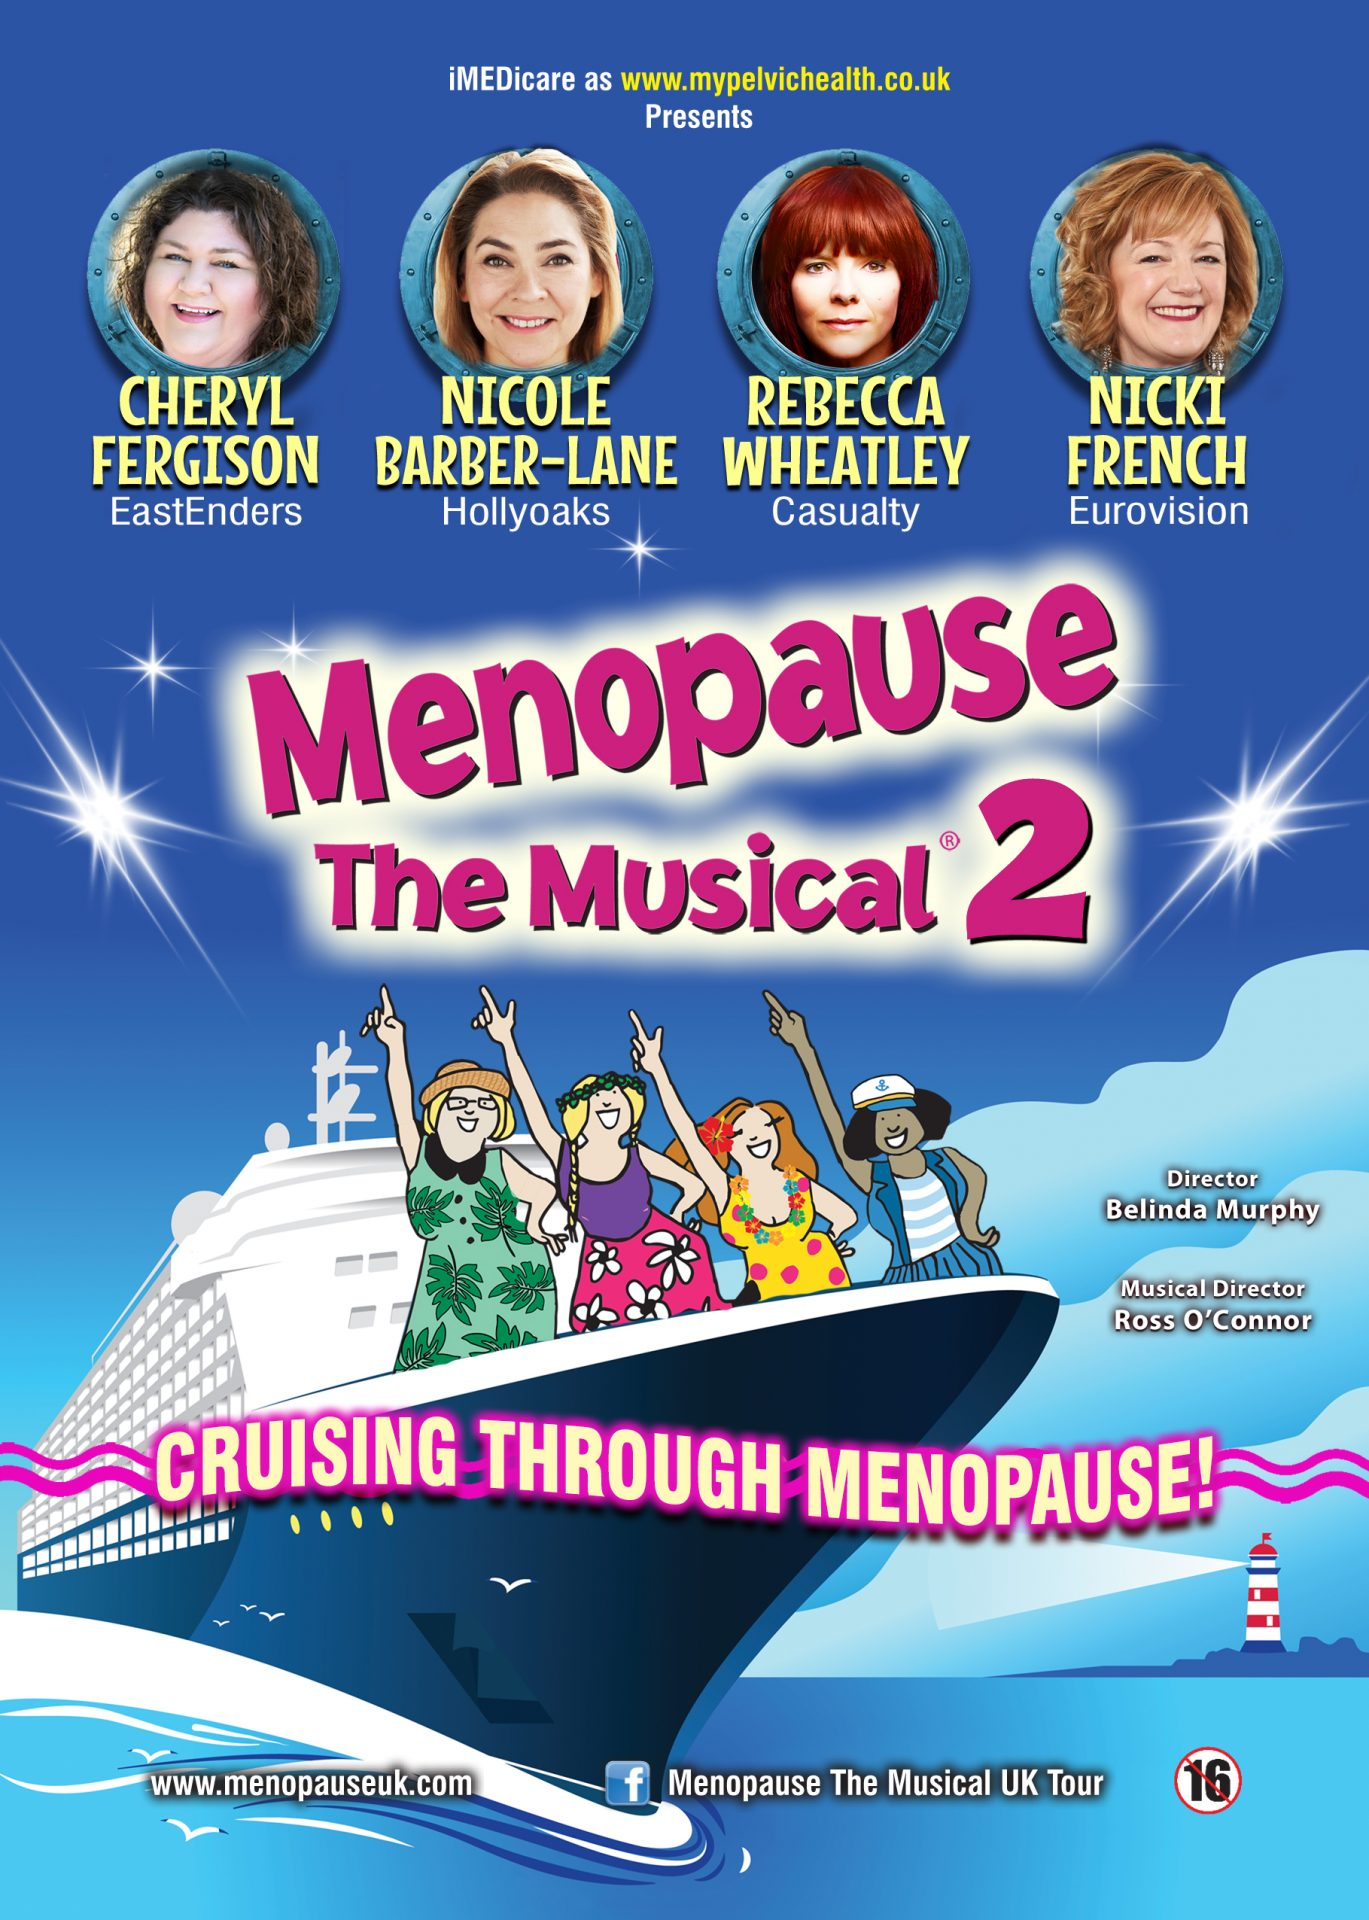 Menopause 2 the musical poster